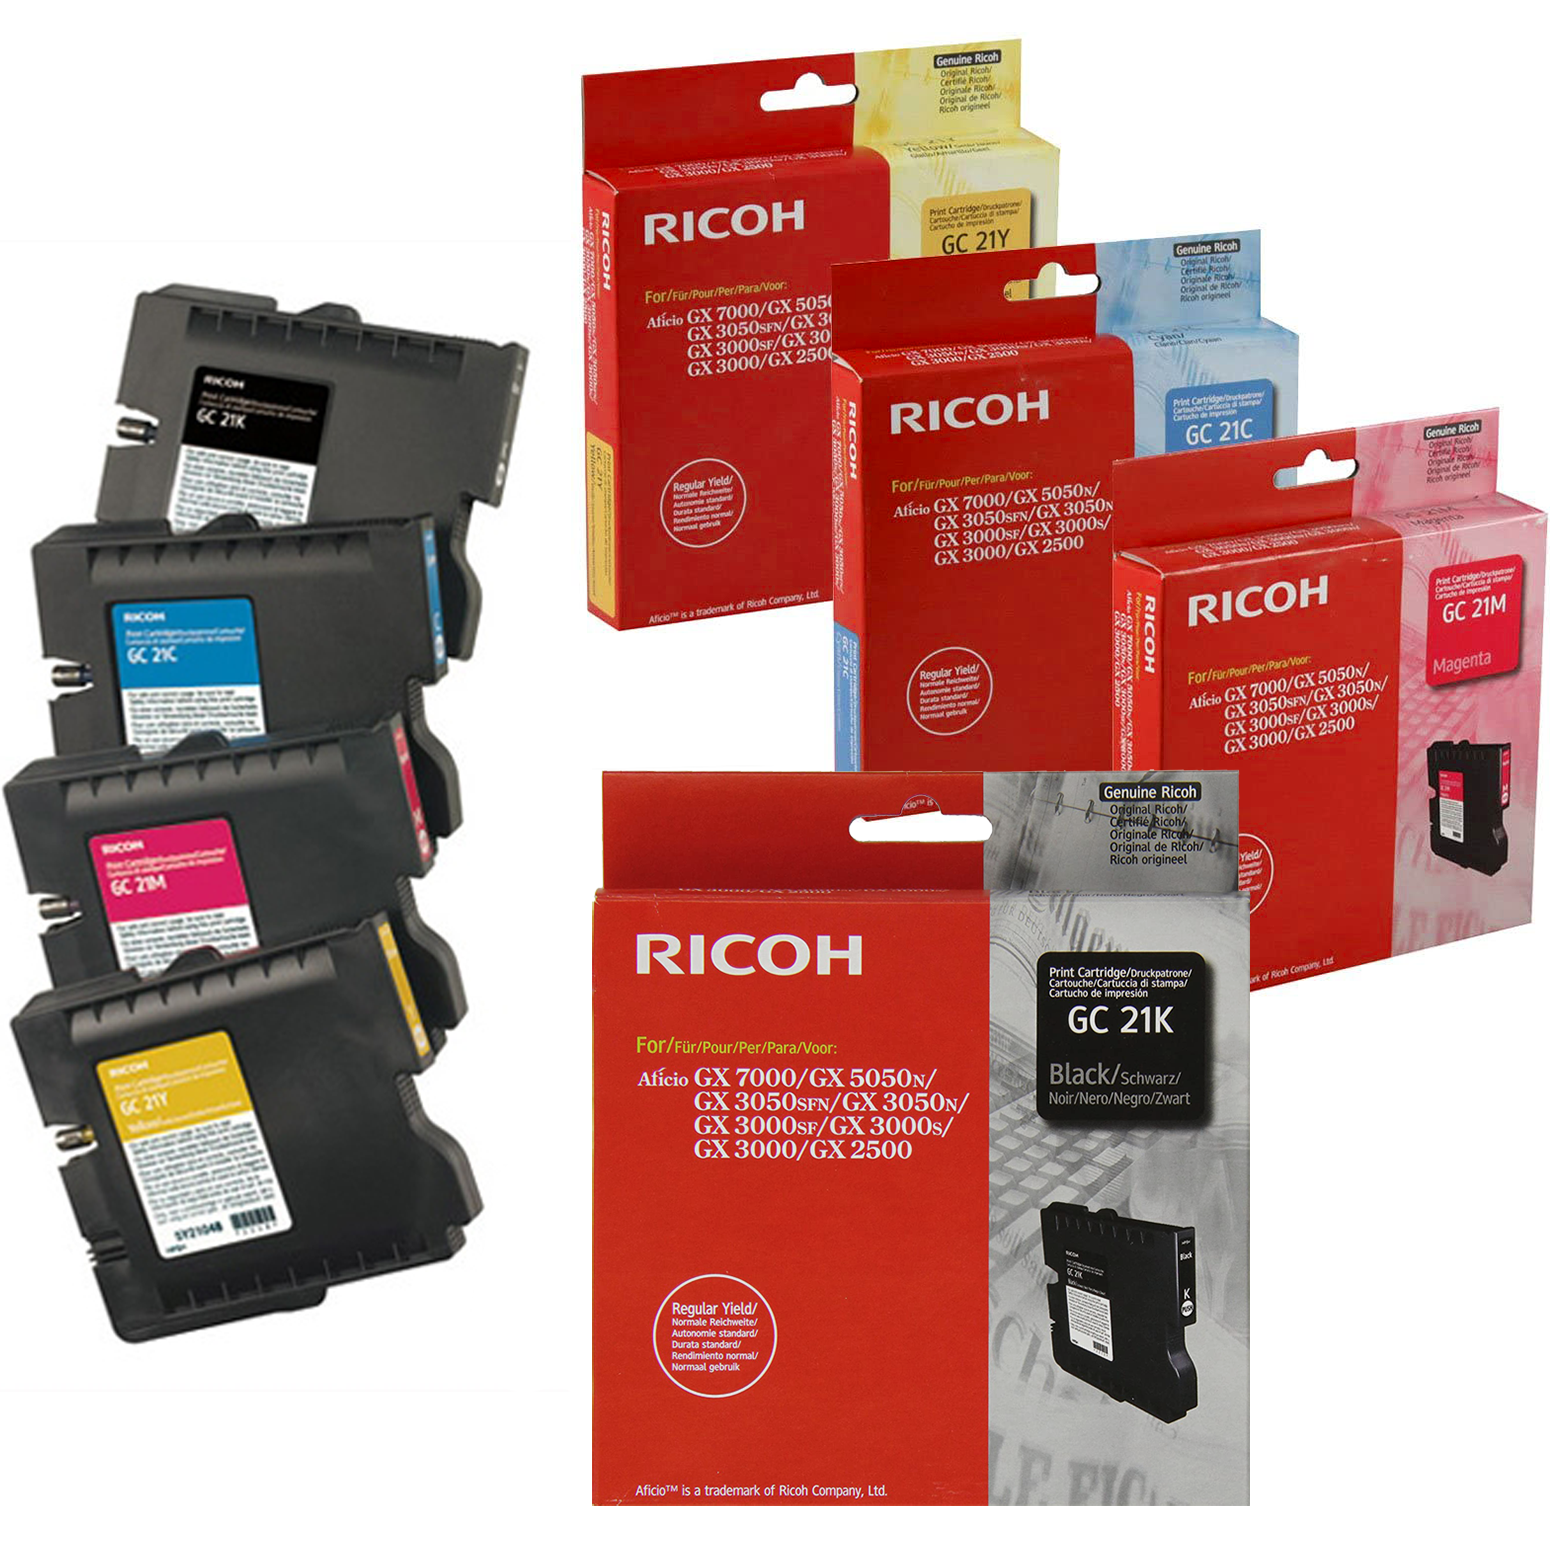 Ricoh GC21 Set | 405532 405533 405534 405535 | Original Ricoh Laser Toner Cartridges – Black, Cyan, Magenta, Yellow